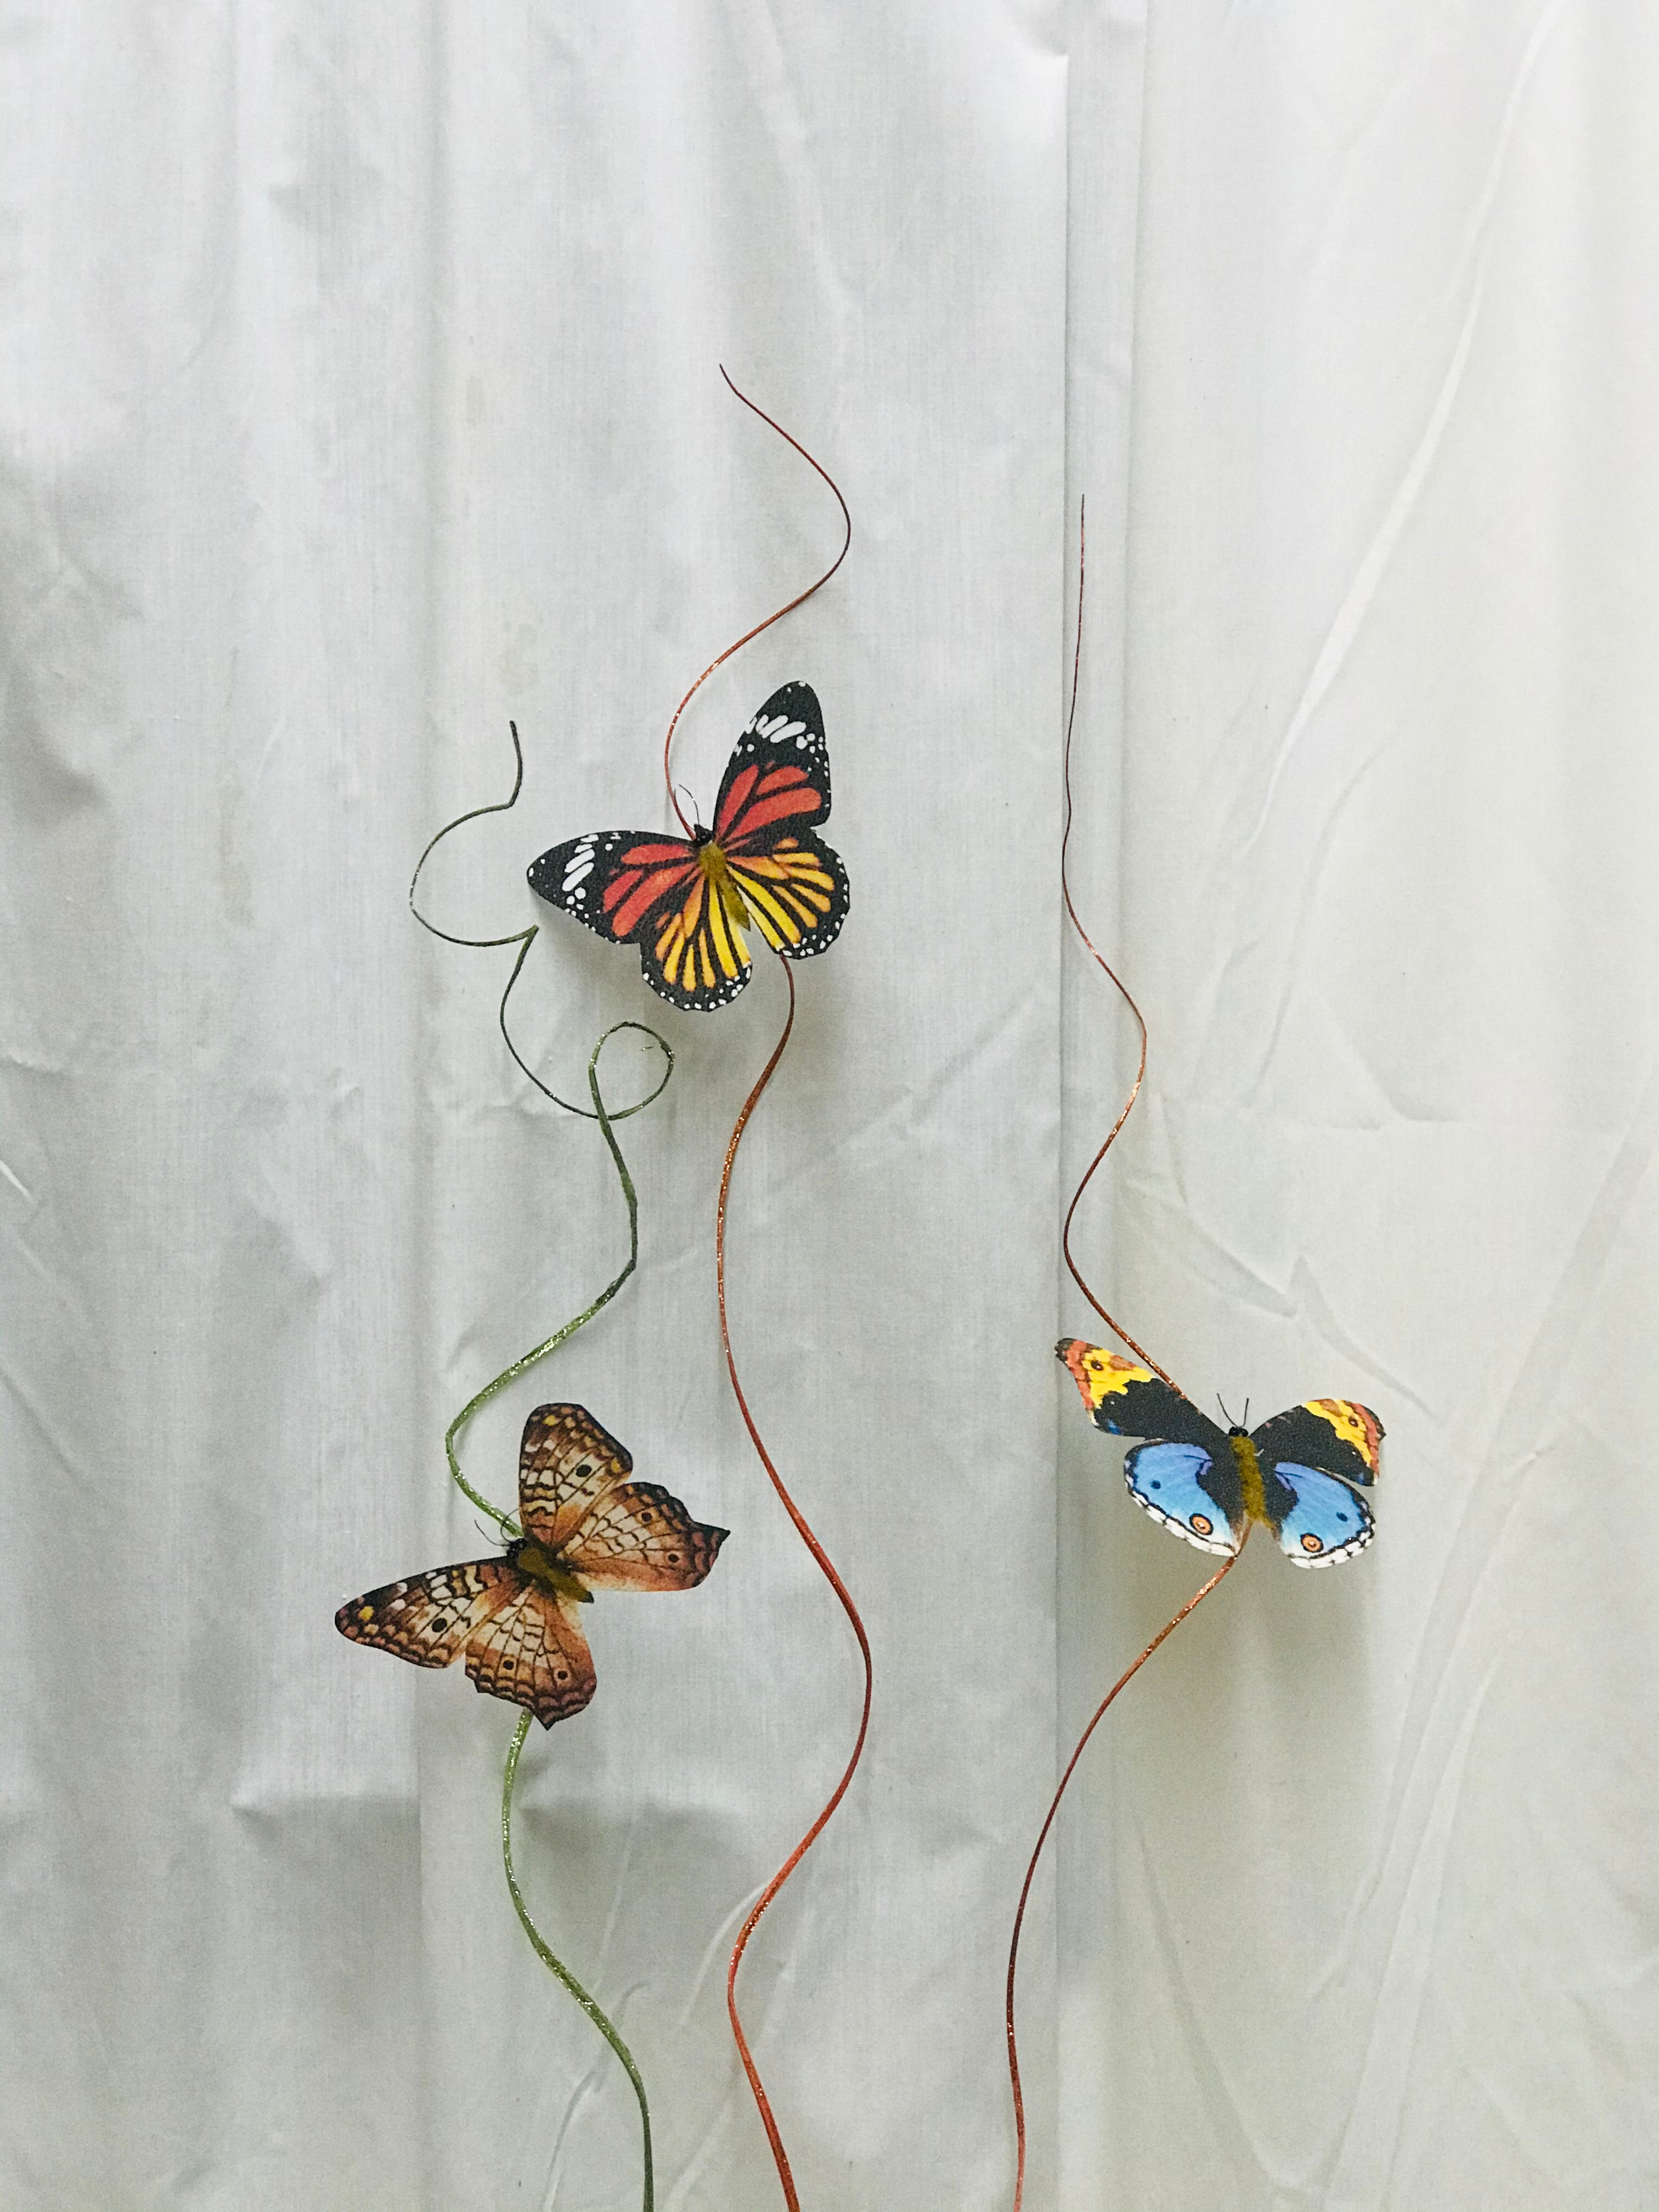 3 Butterflies on twig